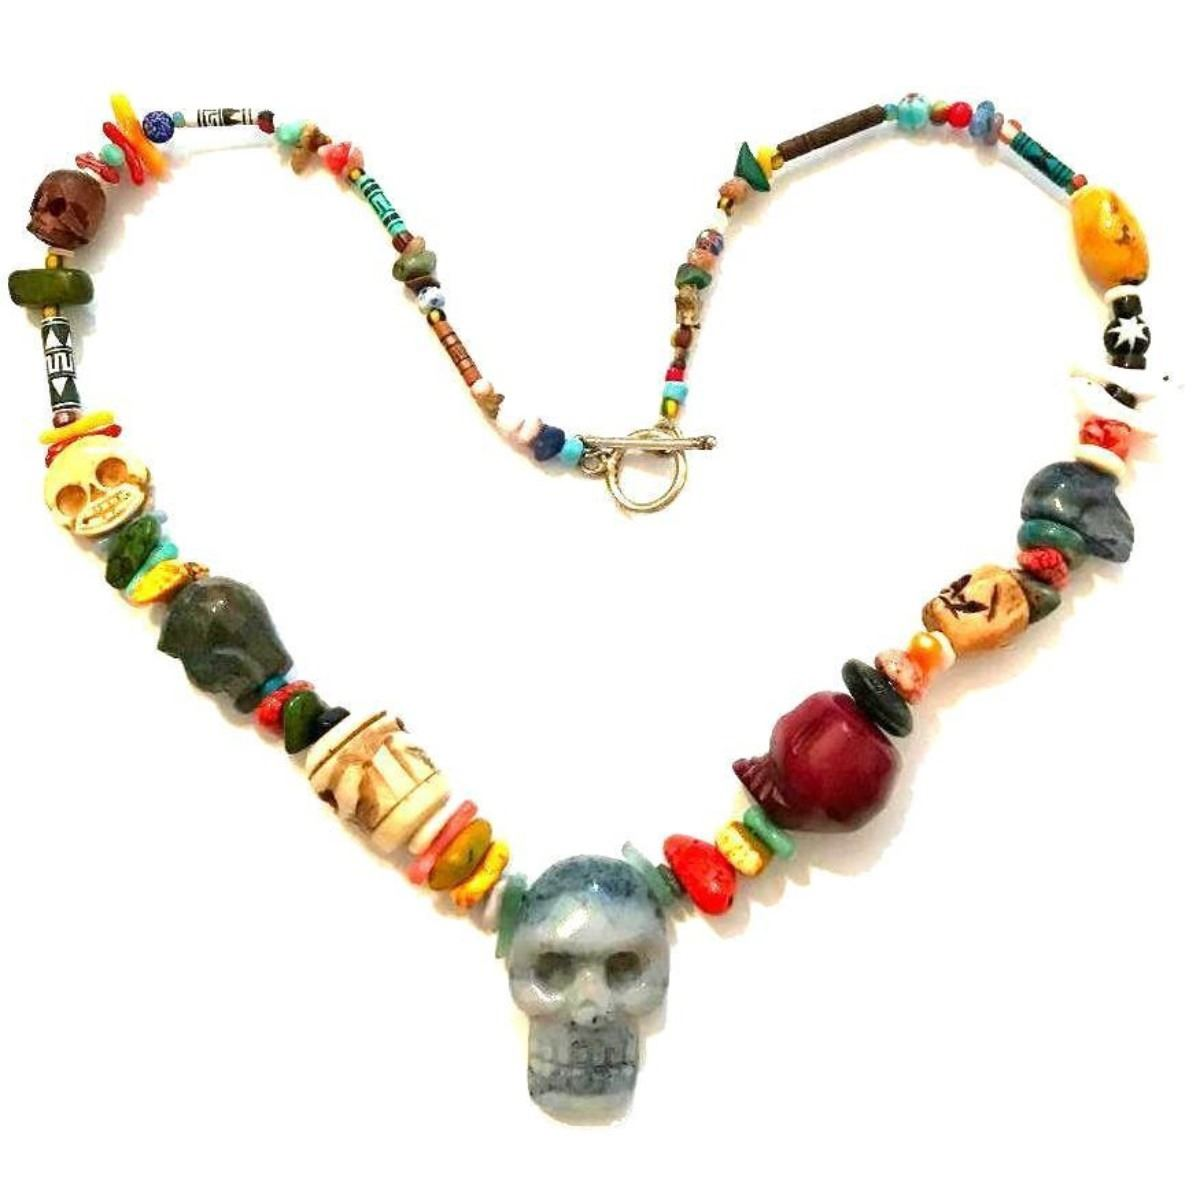 Hand Carved Artisan Skull Beads Necklace